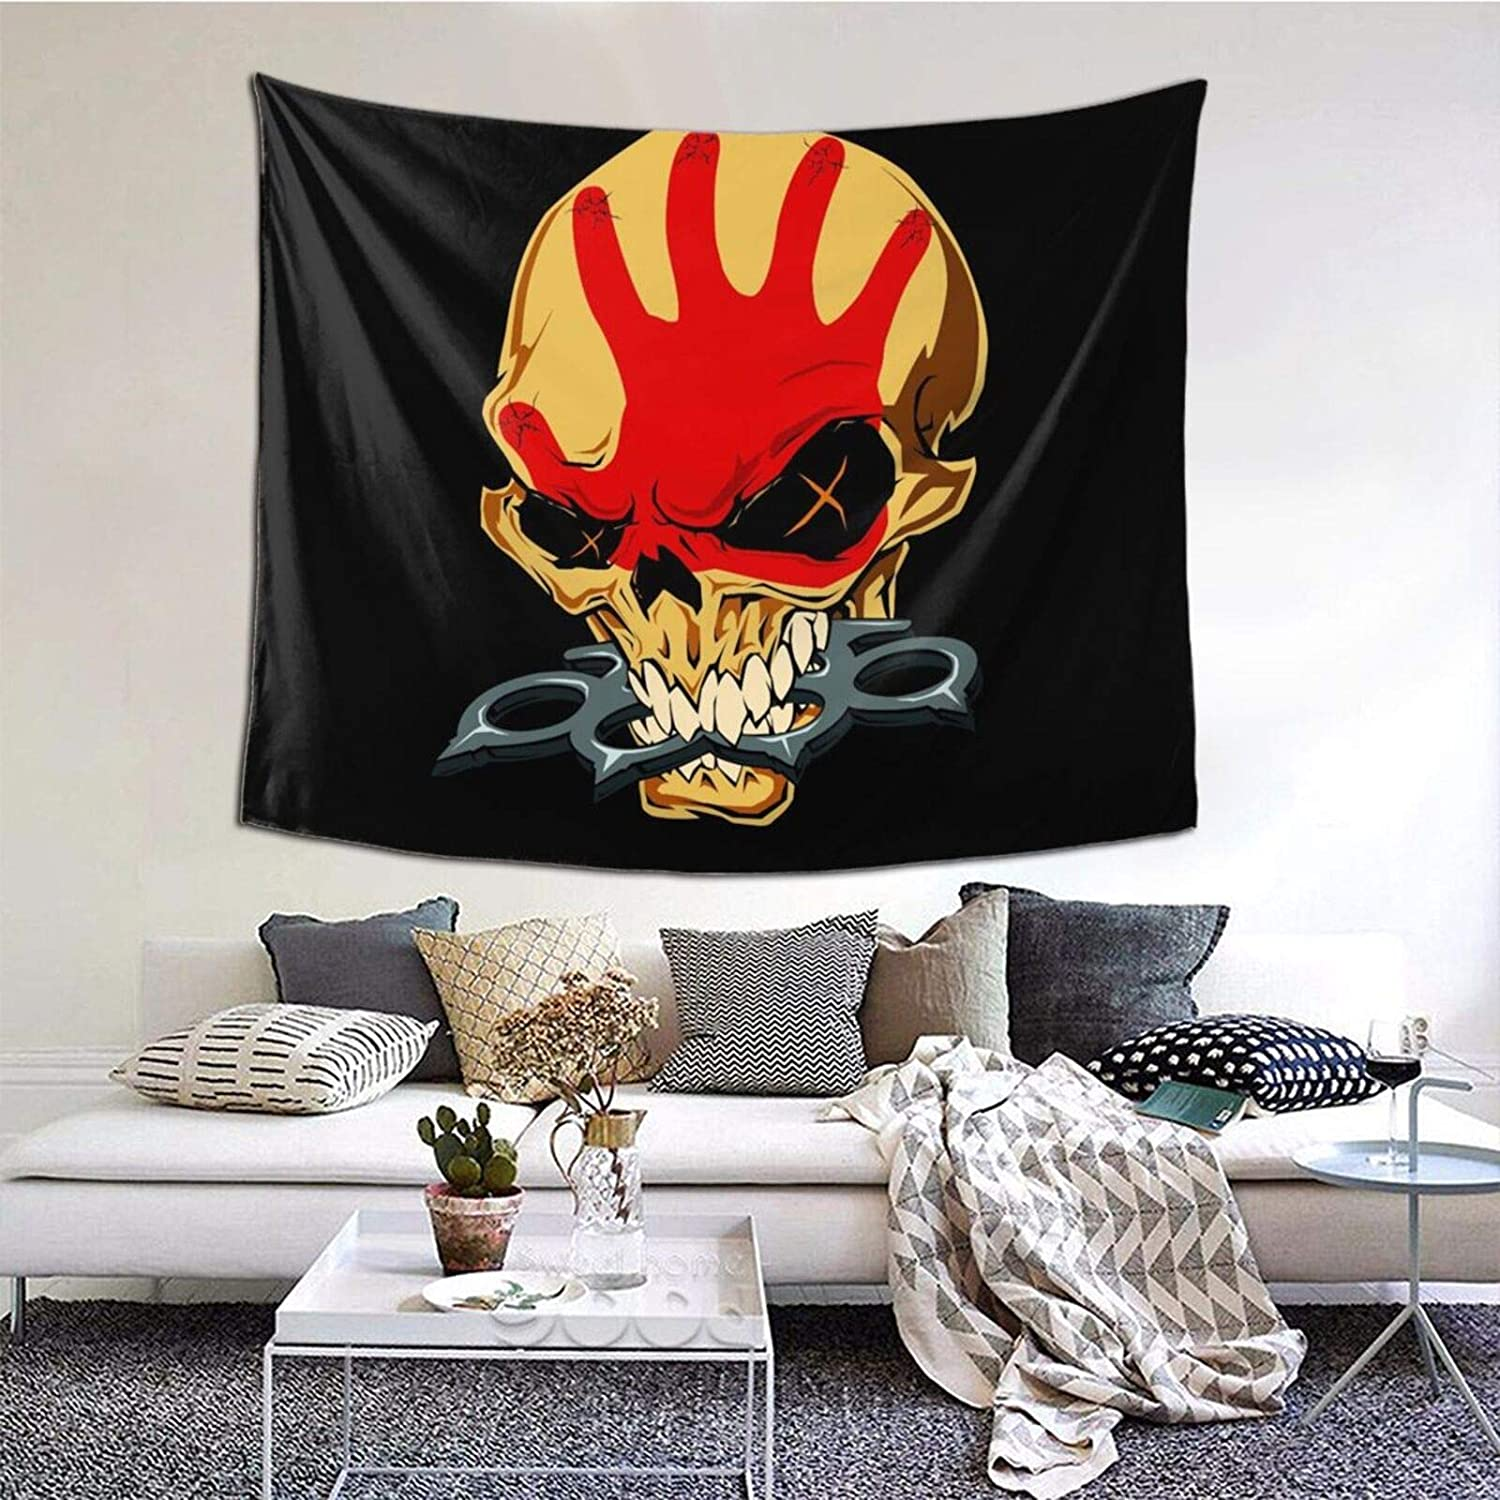 Zulfdli Five Finger Death Punch Tapestry Wall Hanging Home Decorations Machine Washable Tapestries for Outdoor Indoor Bedroom Living Room Dorm Decor 60x51 Inch